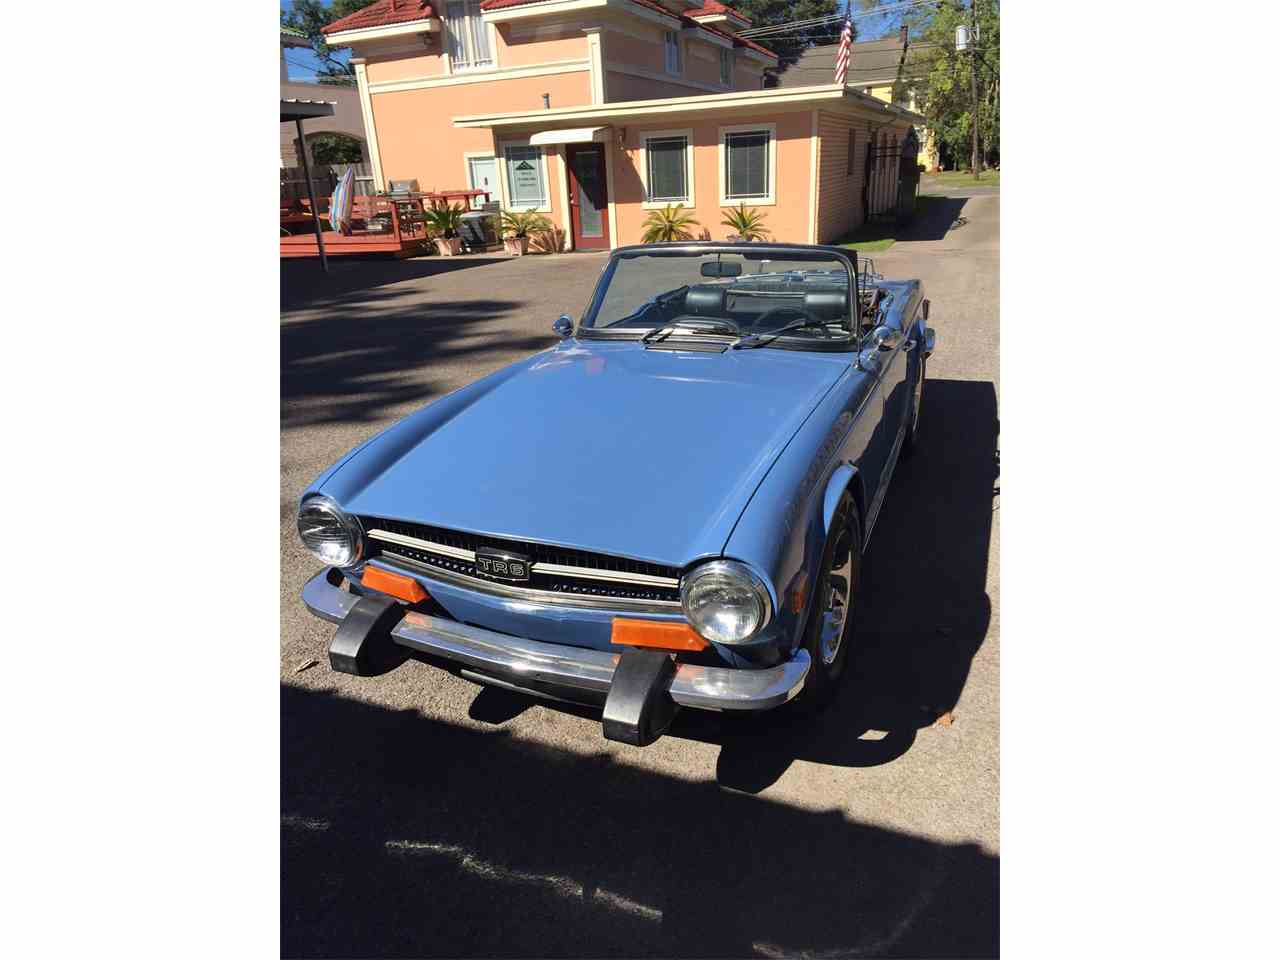 Classic Cars For Sale In Southeast Texas: 1974 Triumph TR6 For Sale